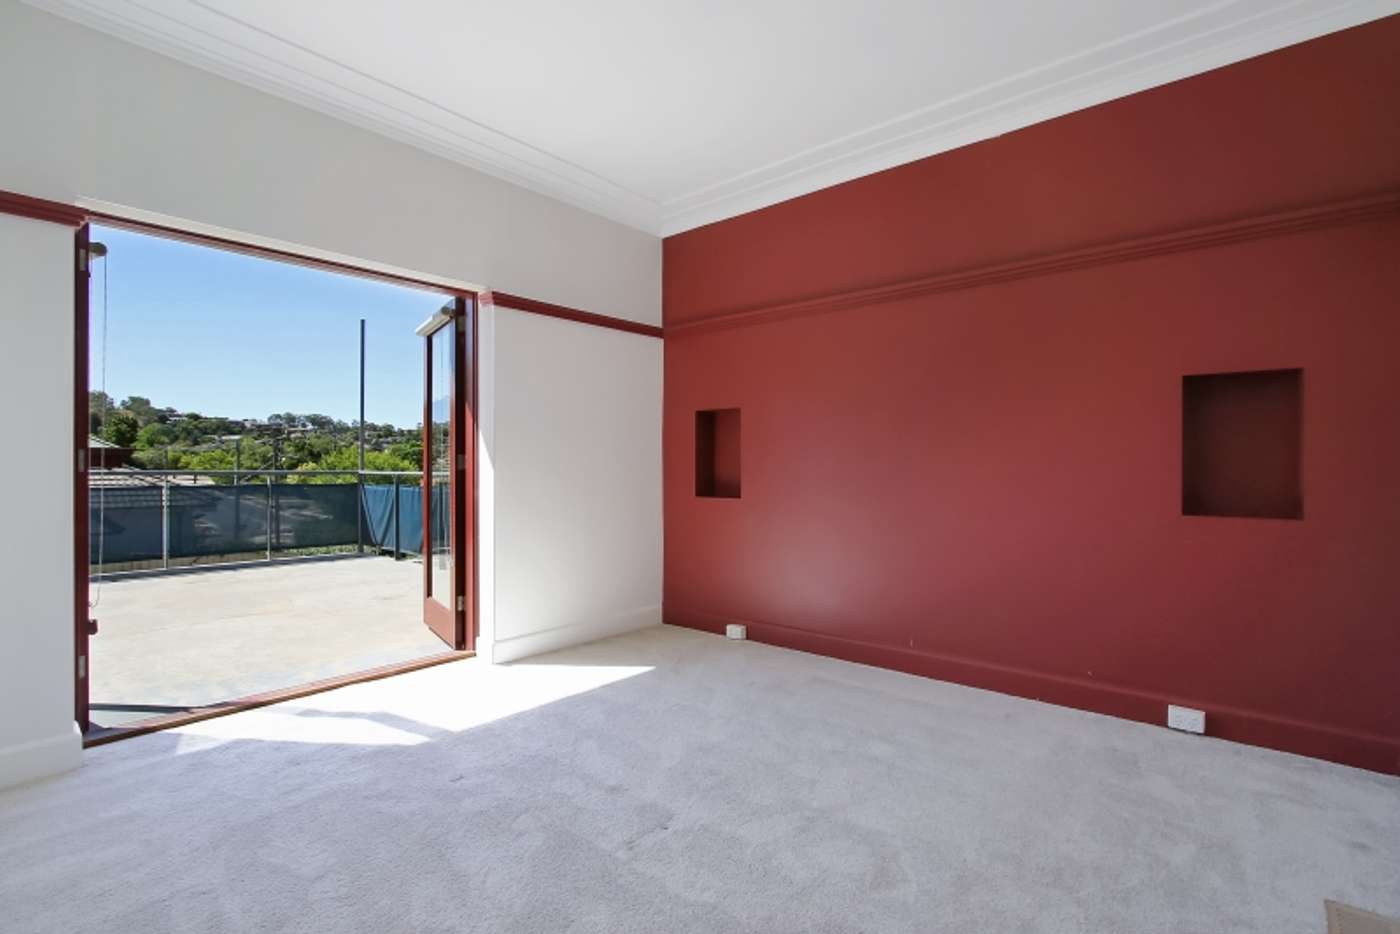 Sixth view of Homely house listing, 637 Sackville Street, Albury NSW 2640